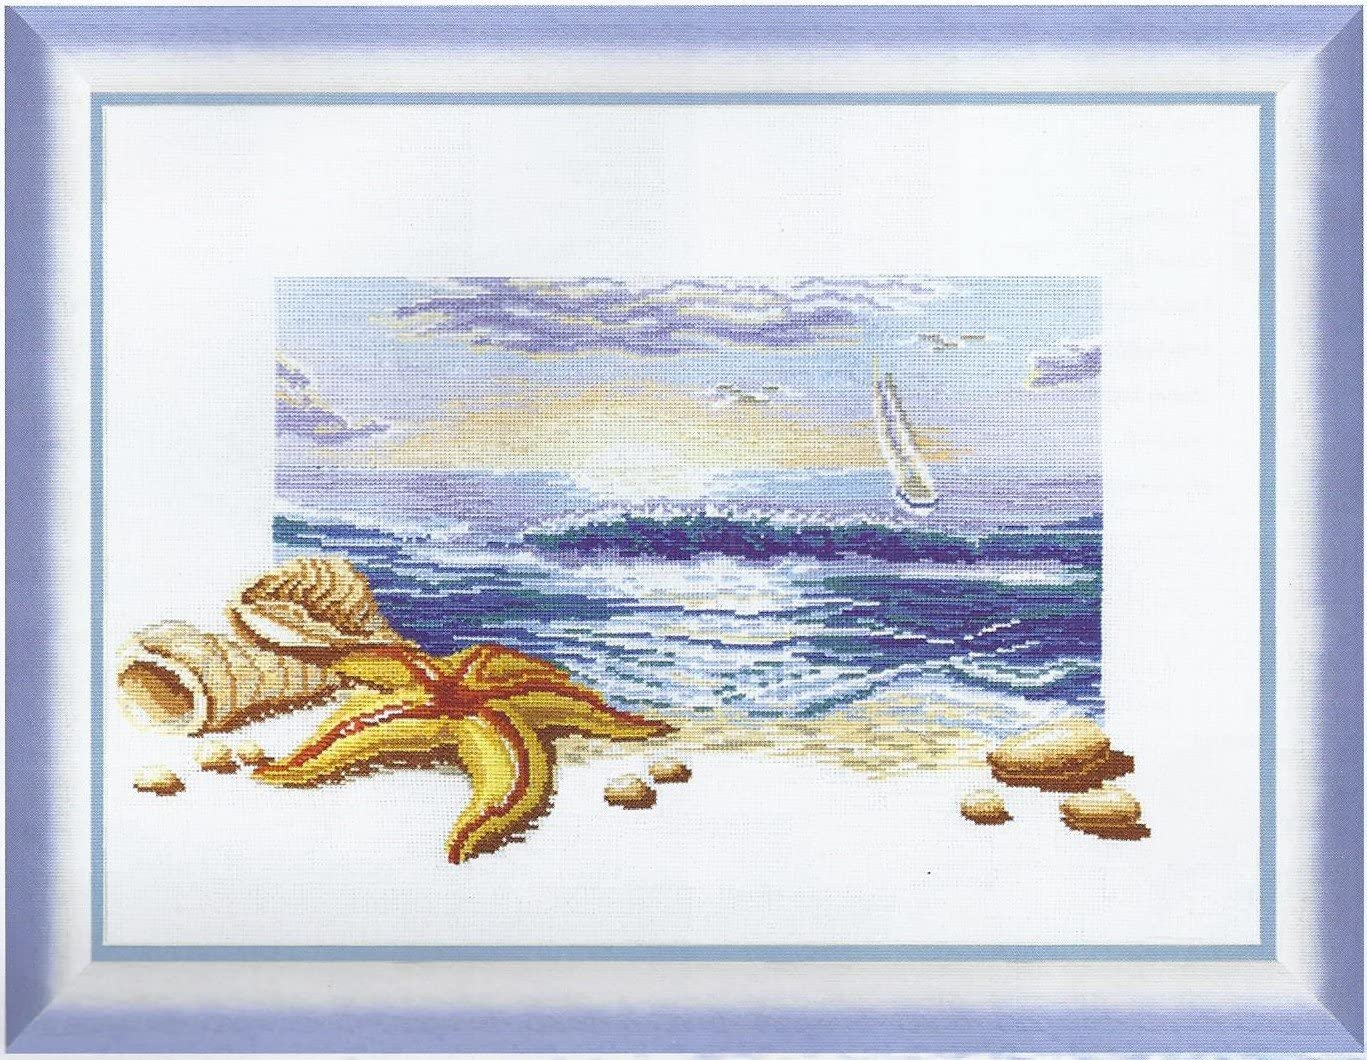 18.50x12.99 in Embroidery Counted cross stitch kit Charivna mit #210 Summer Sea dawn shells and starfish on the sand beach 47x33 cm